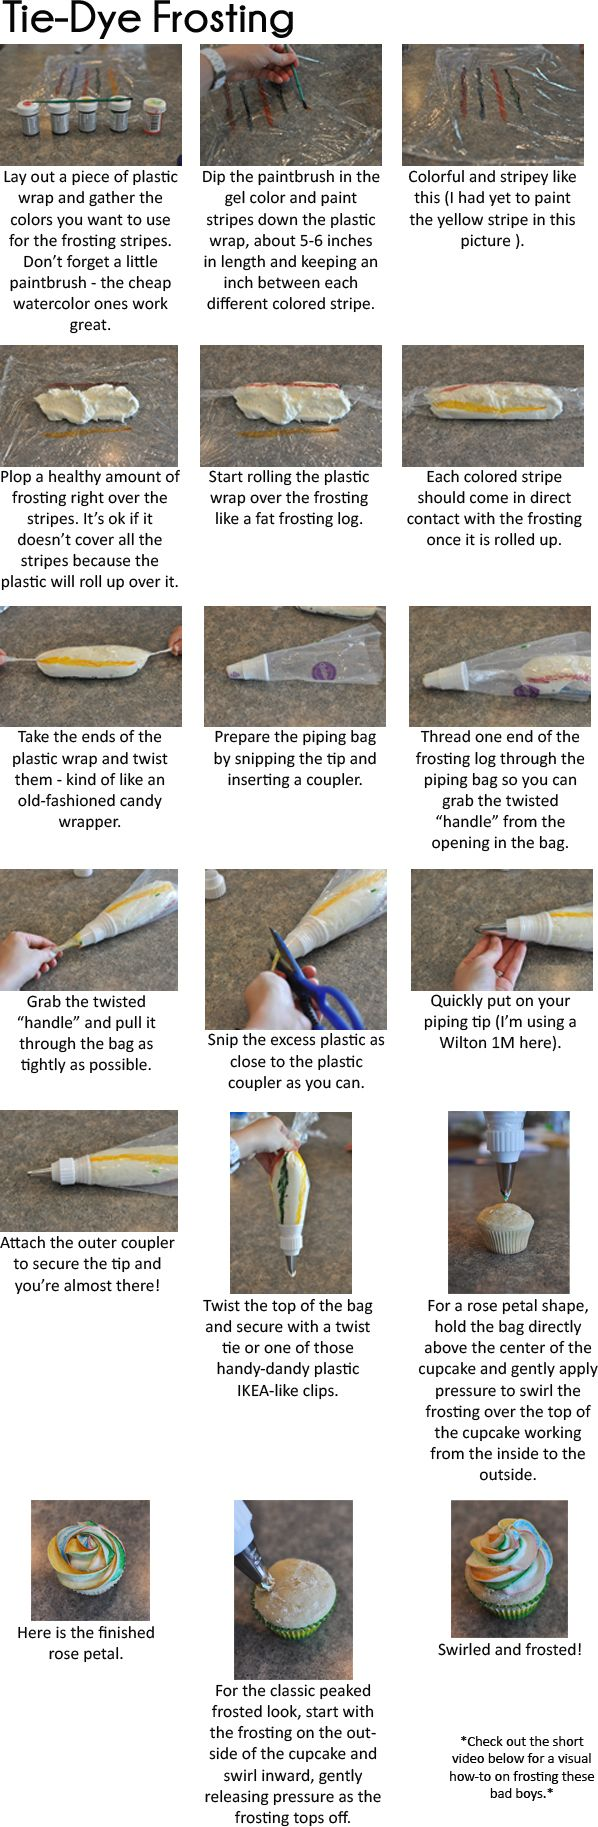 How to Tie-Dye Frosting for Cupcakes